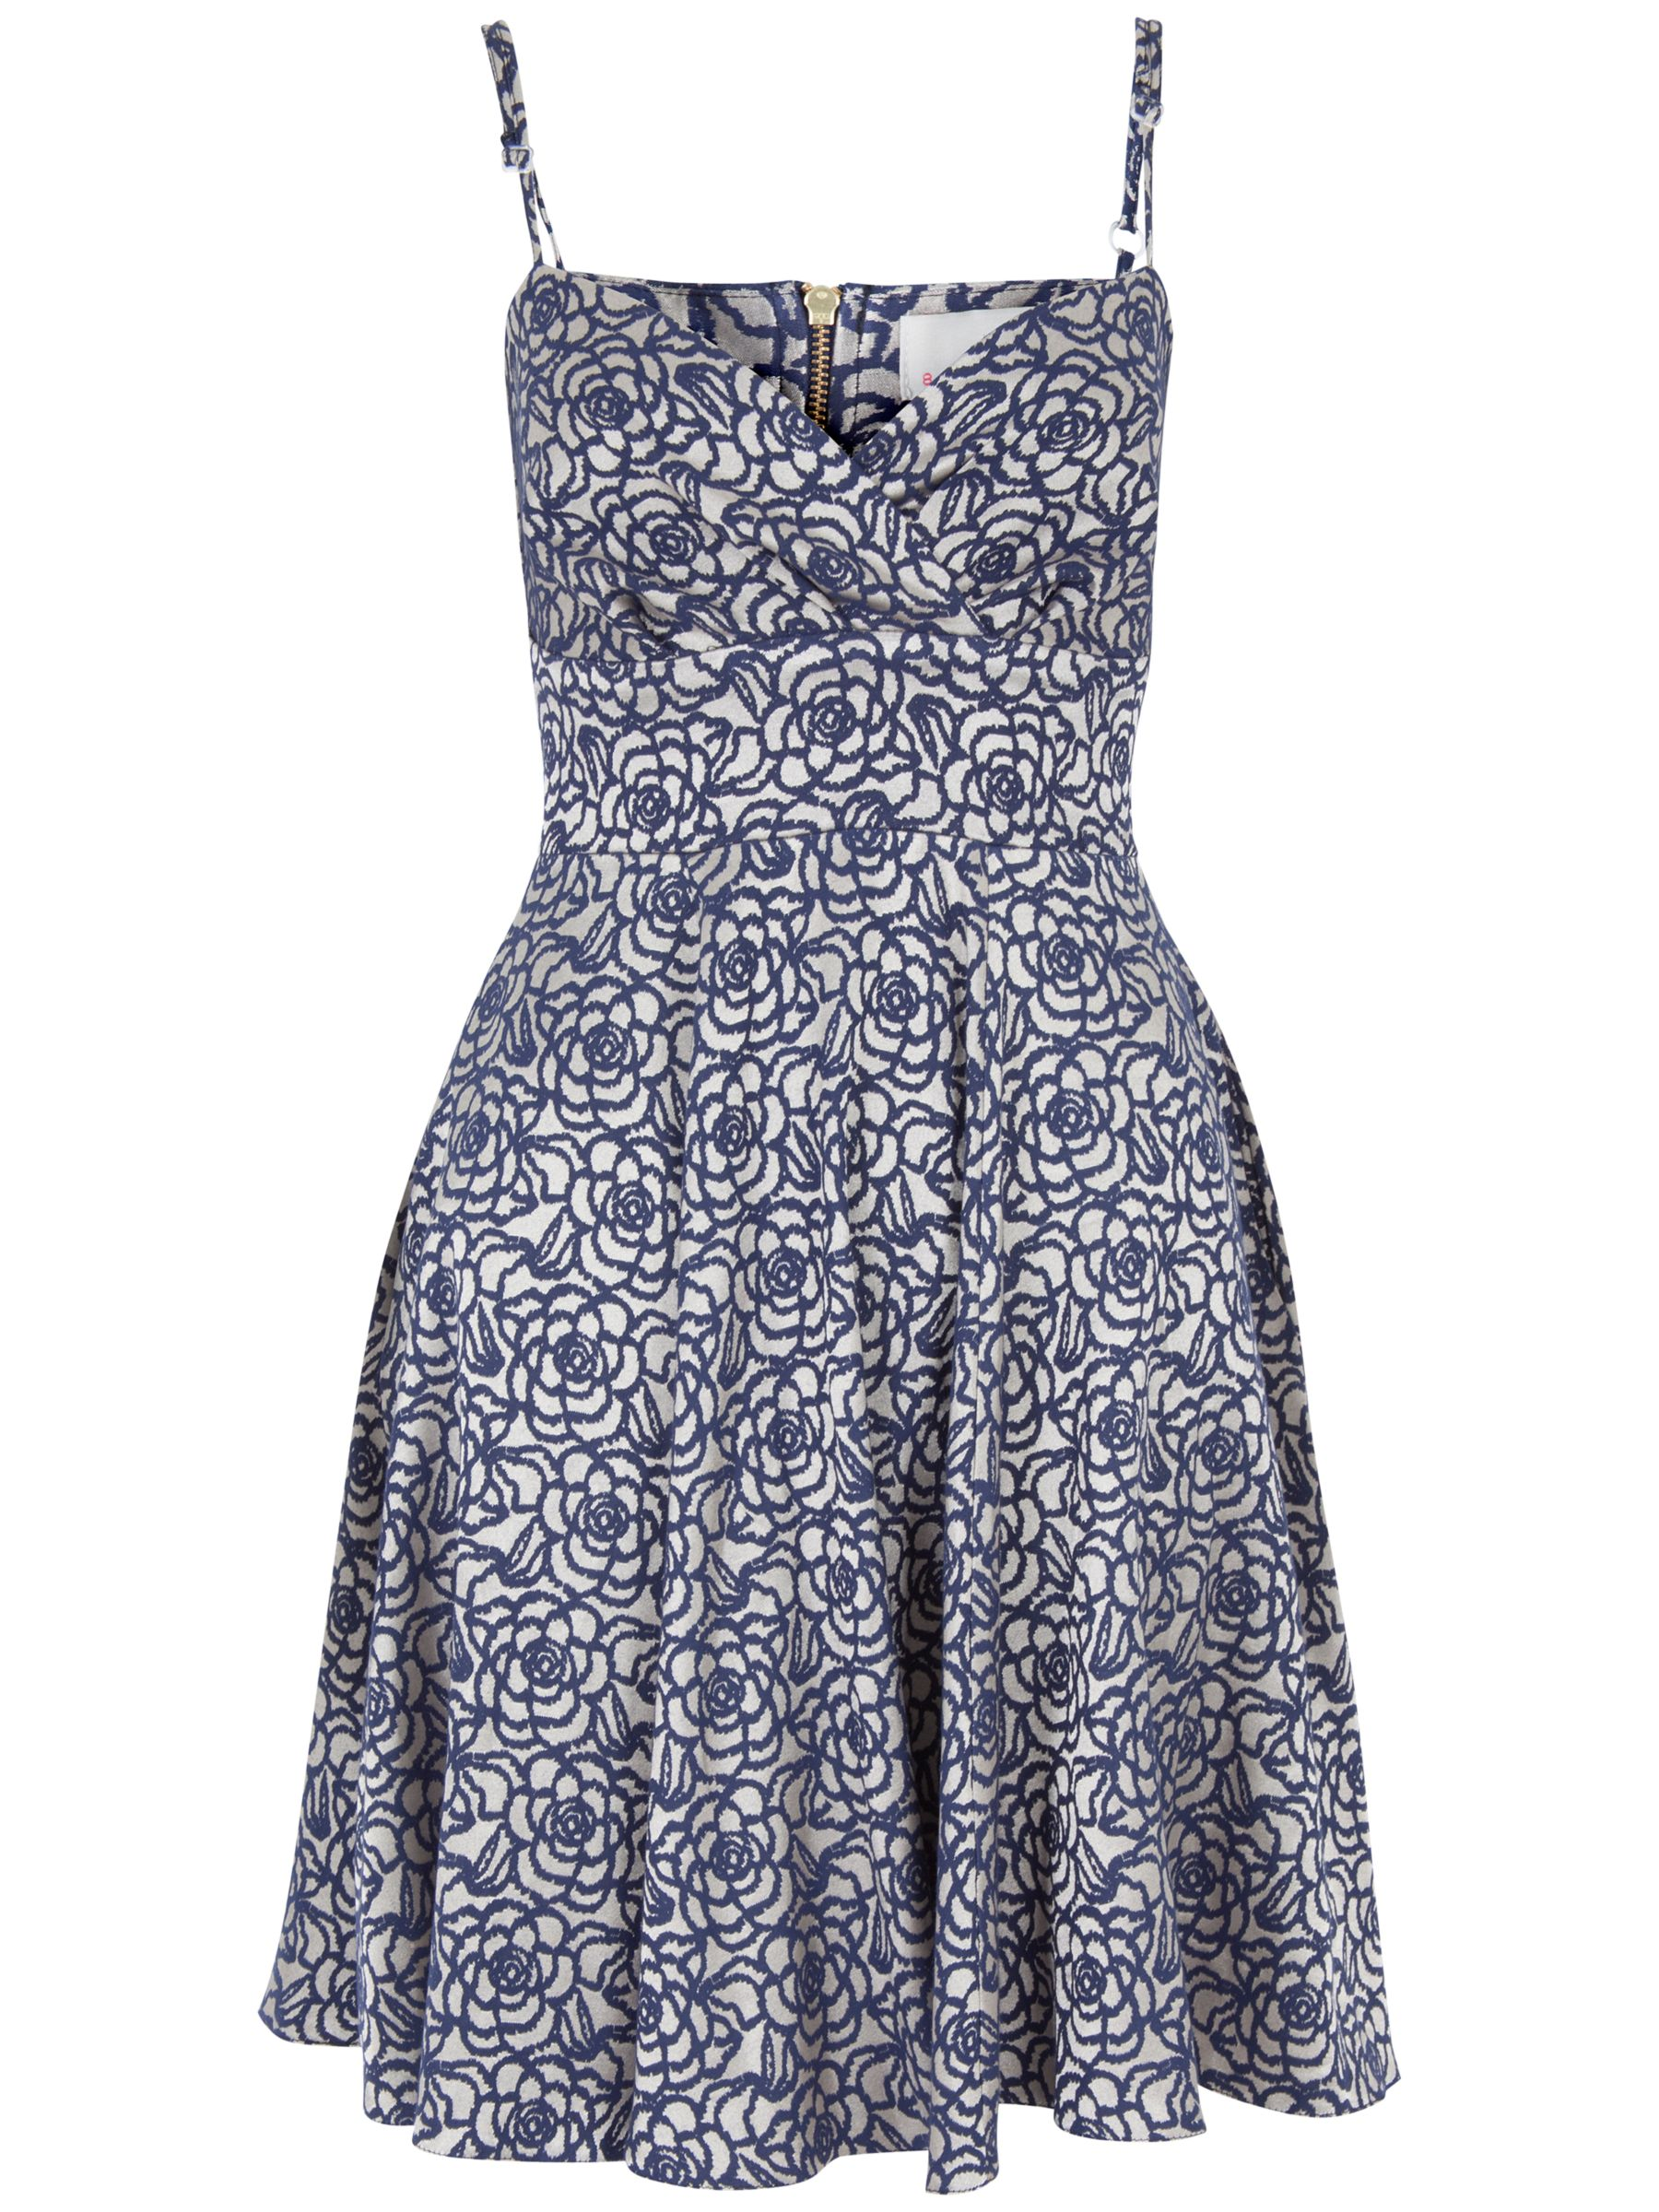 almari rose jacquard strappy dress navy, almari, rose, jacquard, strappy, dress, navy, 10|8|14, clearance, womenswear offers, womens dresses offers, winter sun, women, inactive womenswear, new reductions, womens dresses, buy now save for spring, special offers, 1787239